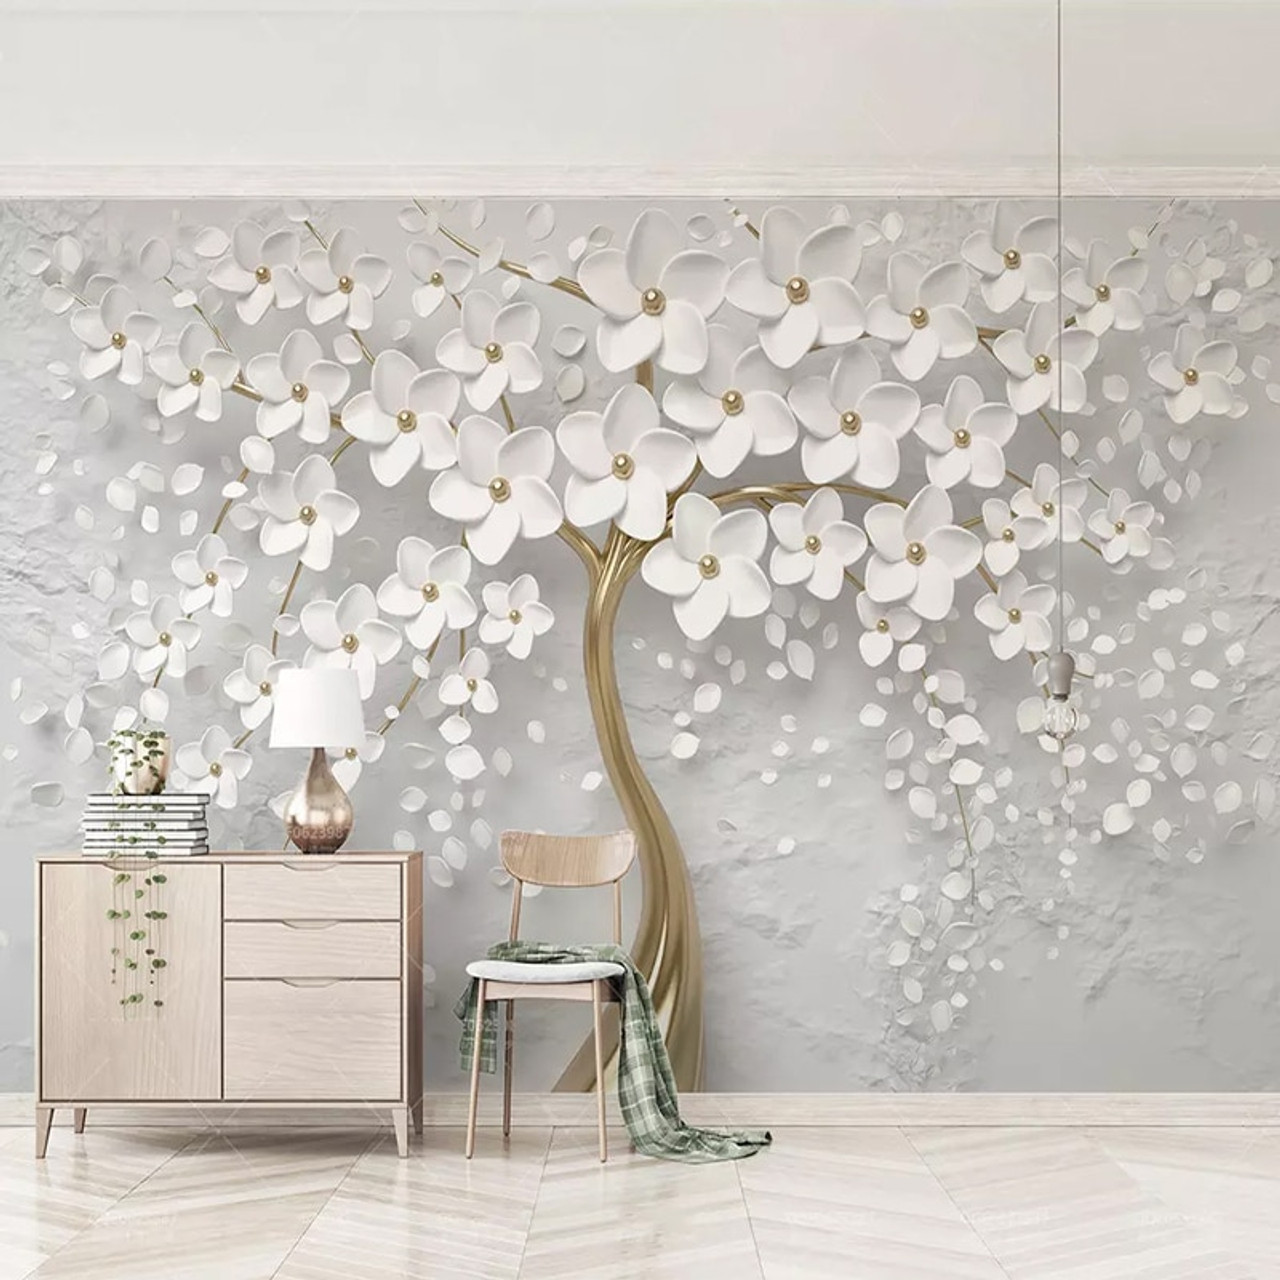 Custom Any Size Murals Wallpaper 3d Stereo White Flowers Wall Painting Living Room Tv Sofa Bedroom Backdrop Wall Papel De Parede Onshopdeals Com